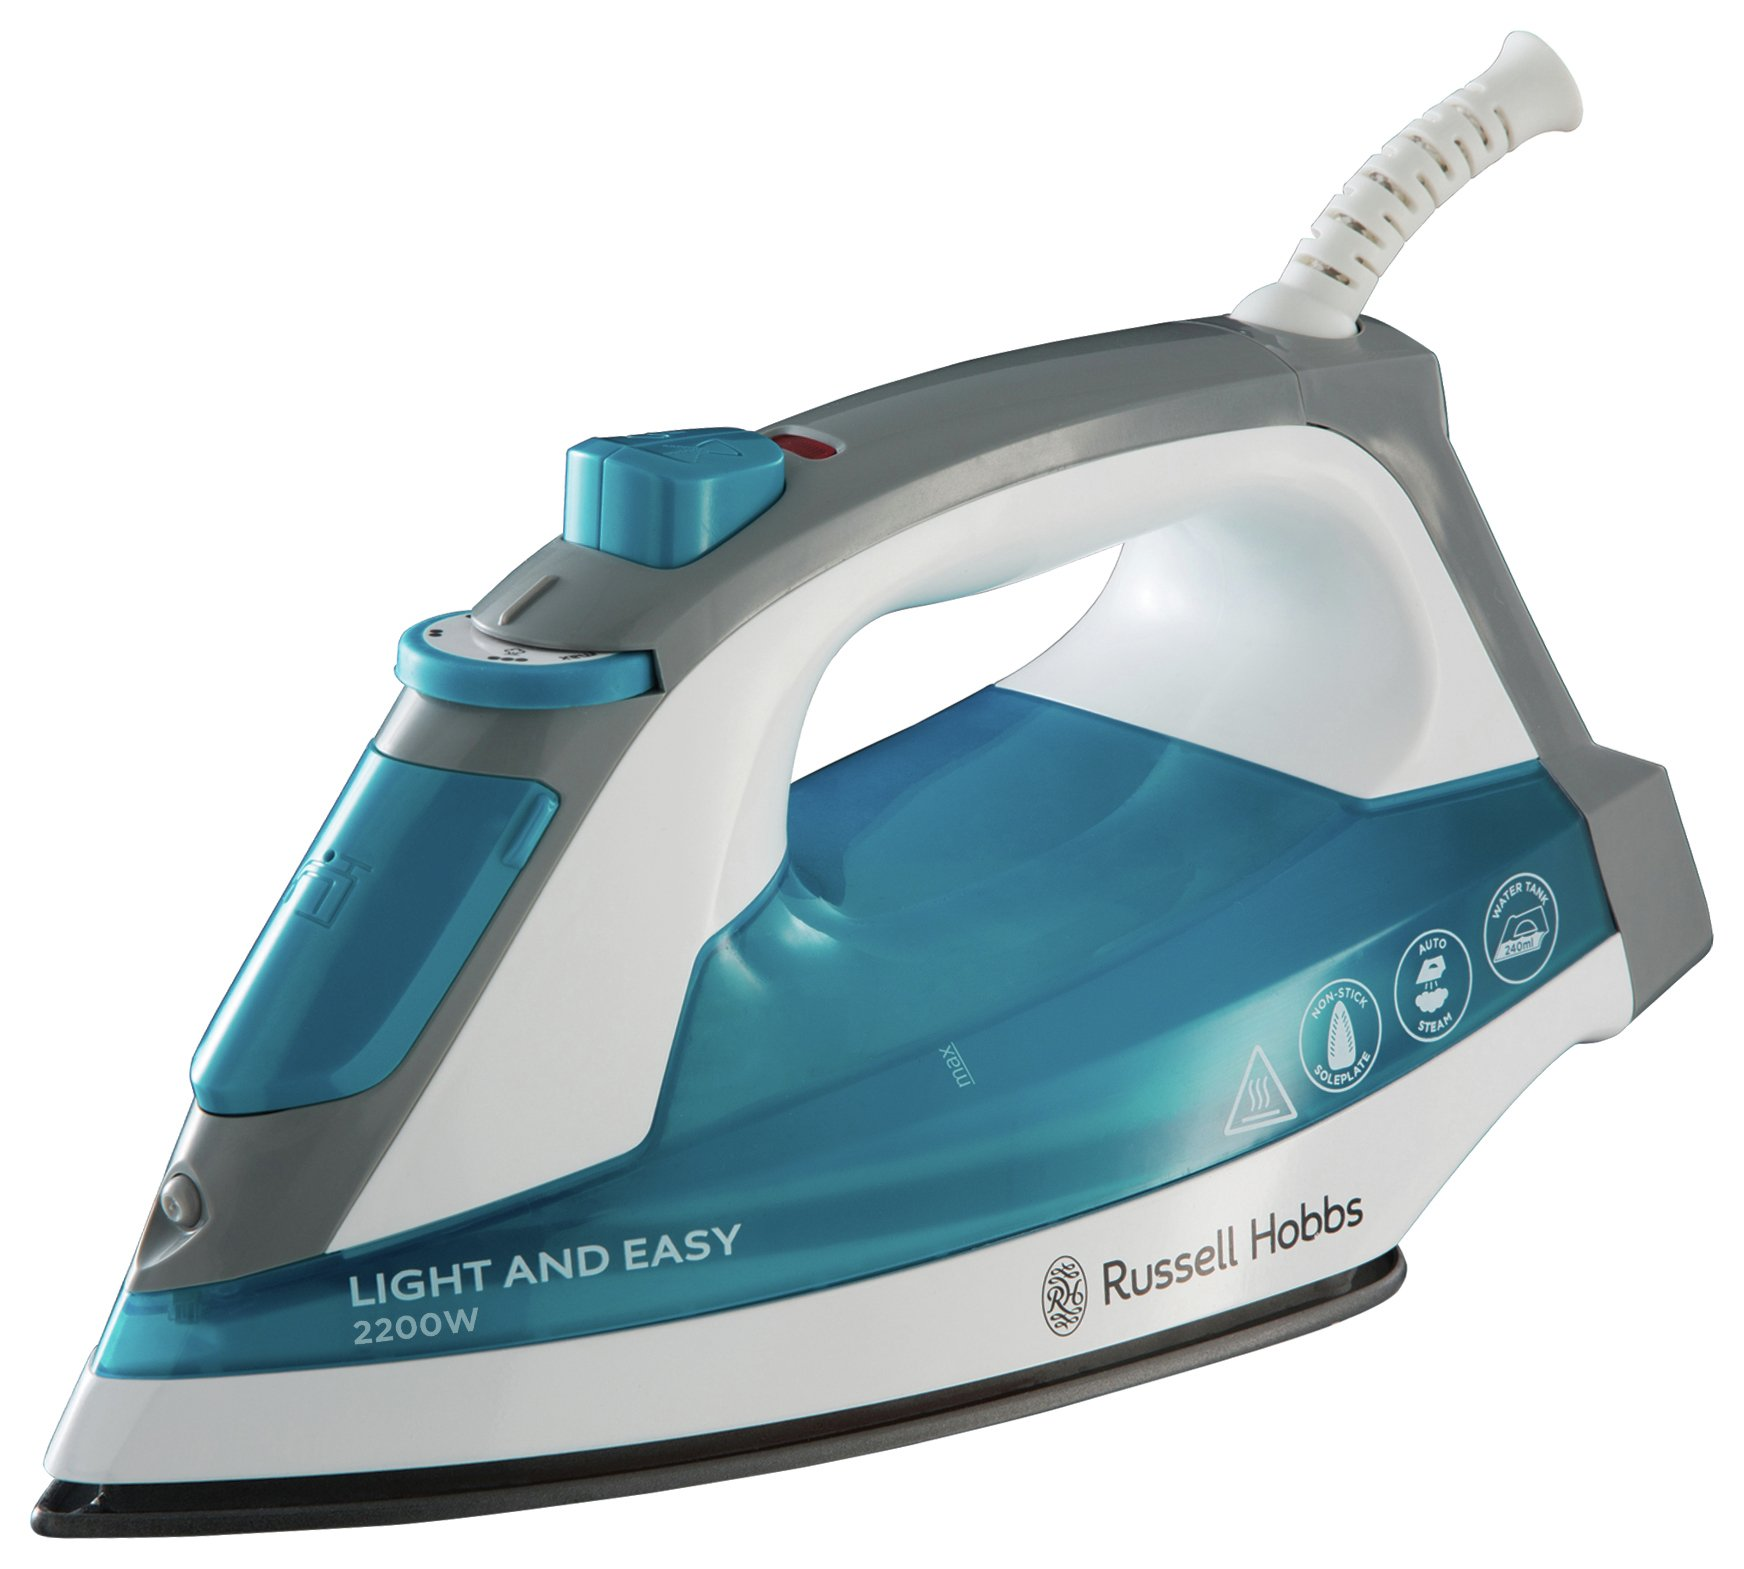 Russell Hobbs 23590 Light & Easy Steam Iron